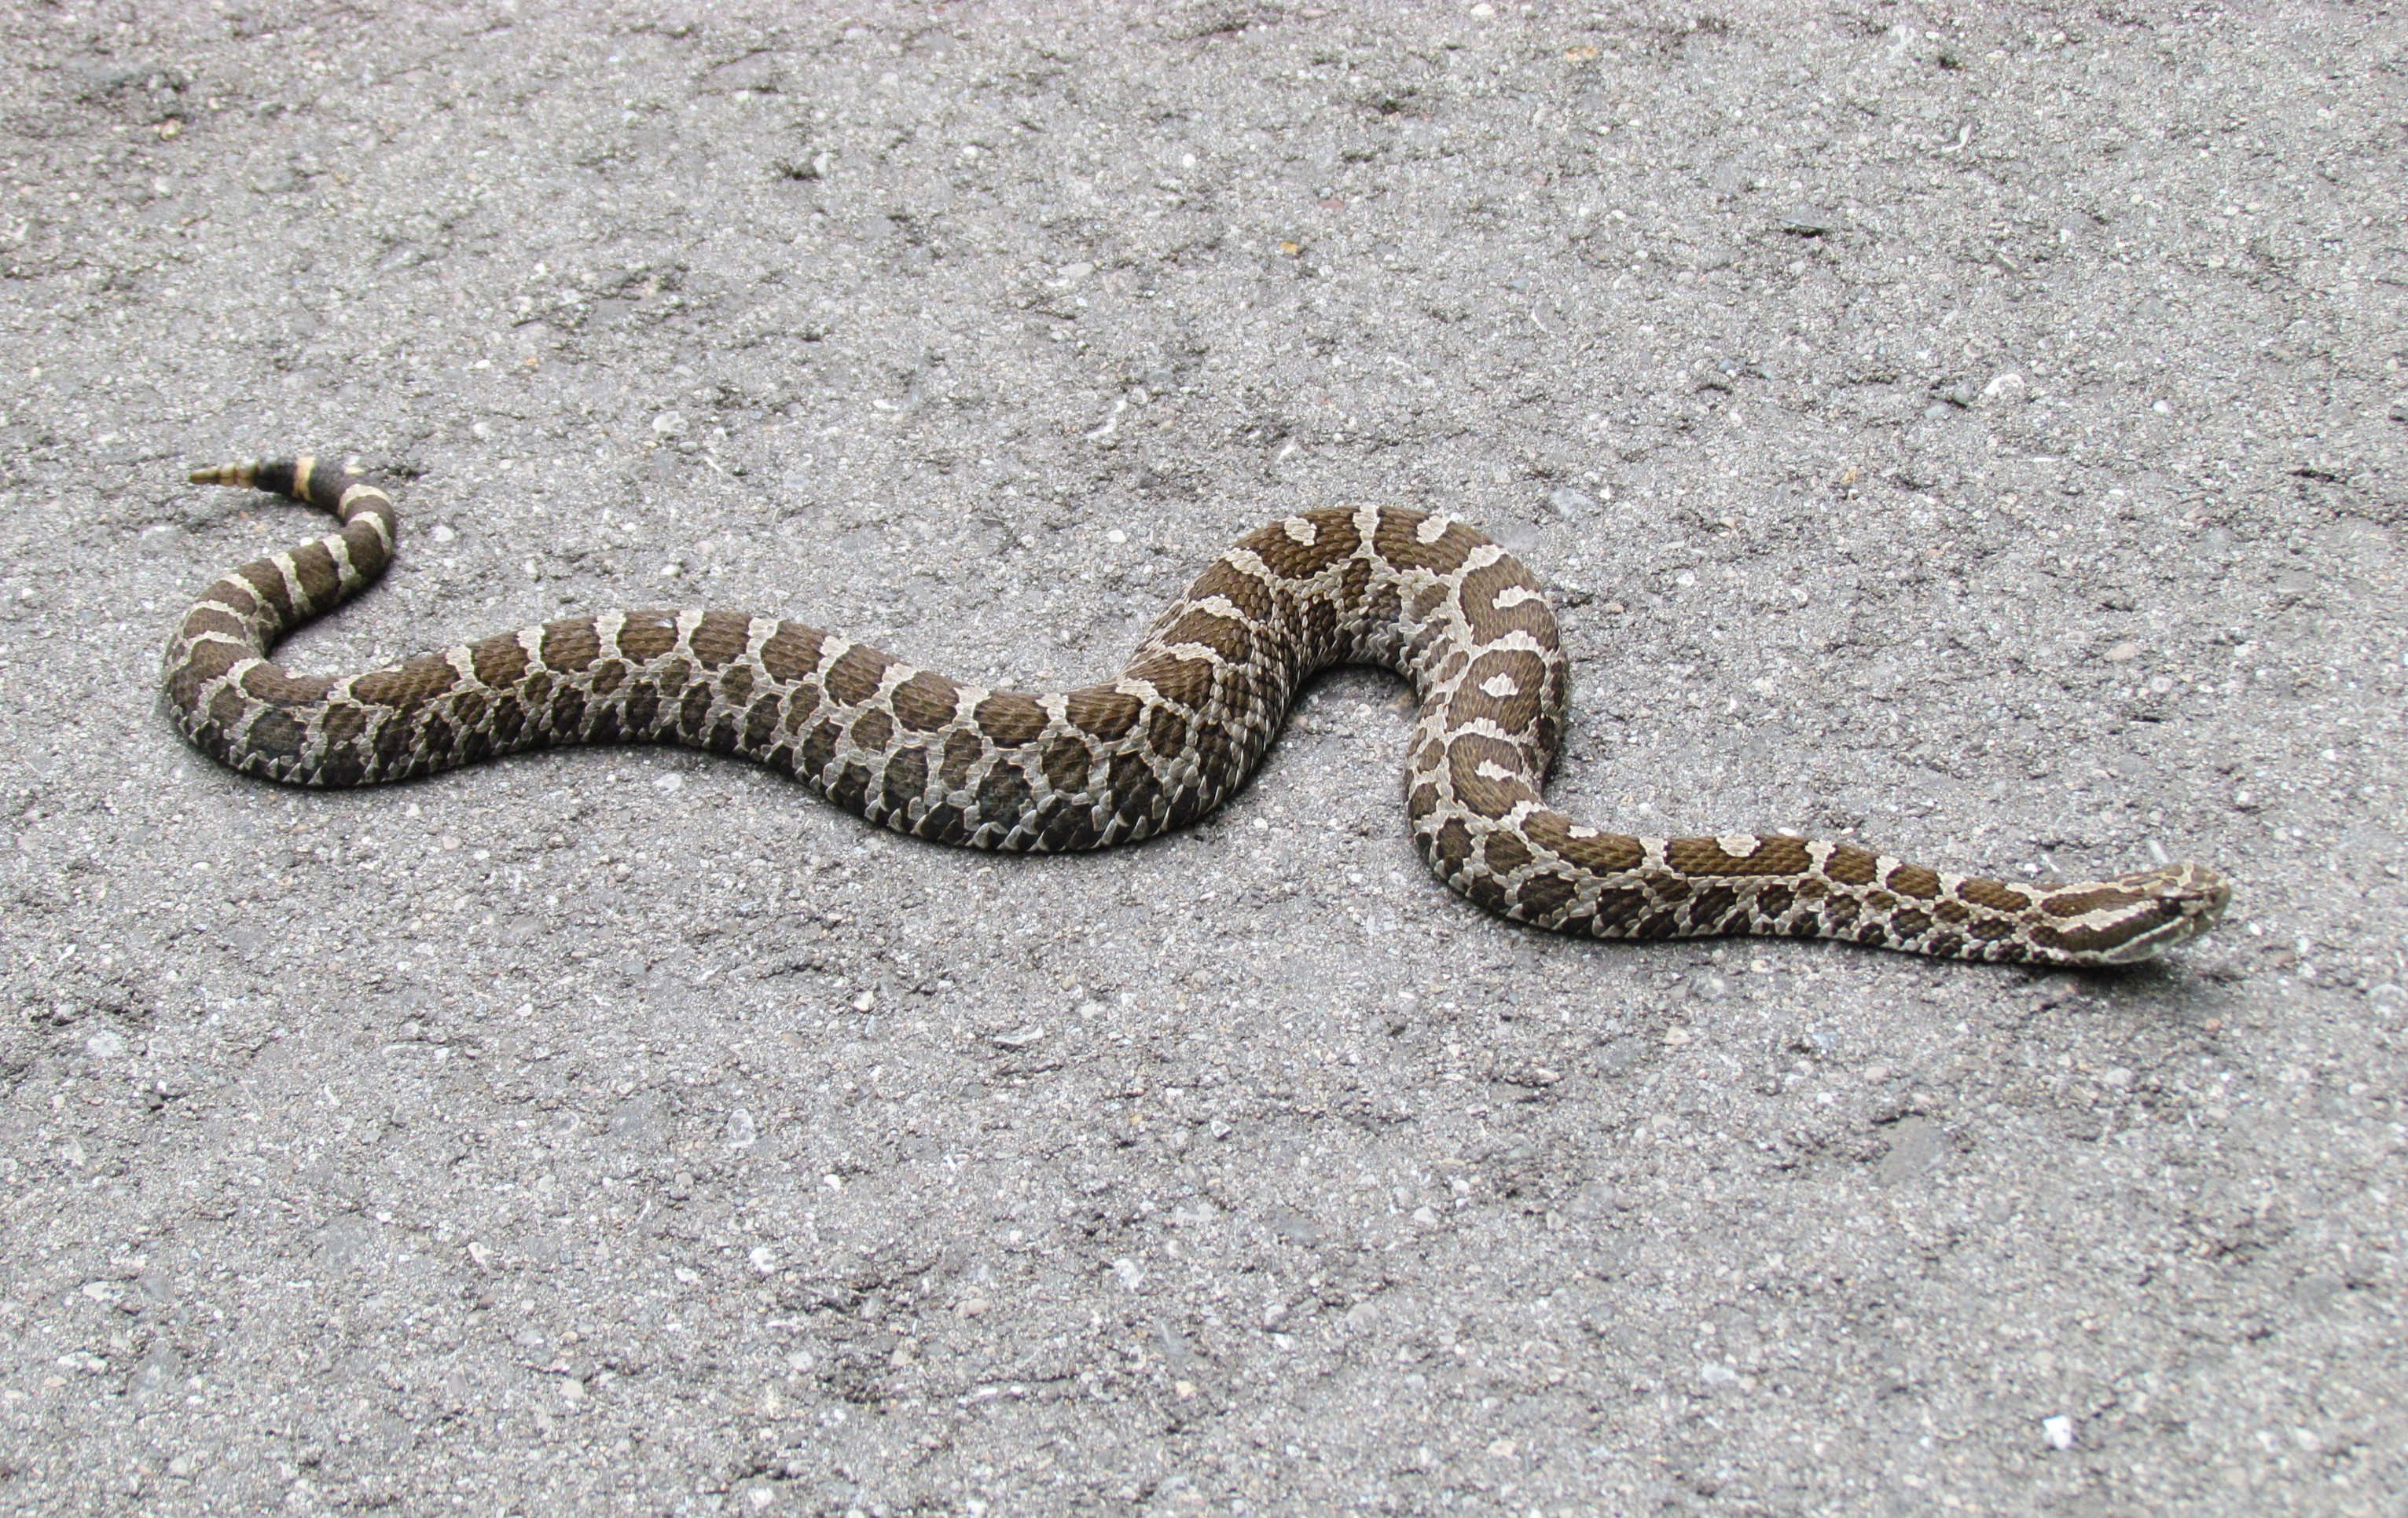 An Eastern Massasauga Rattlesnake stretched out sunning itself on a path.